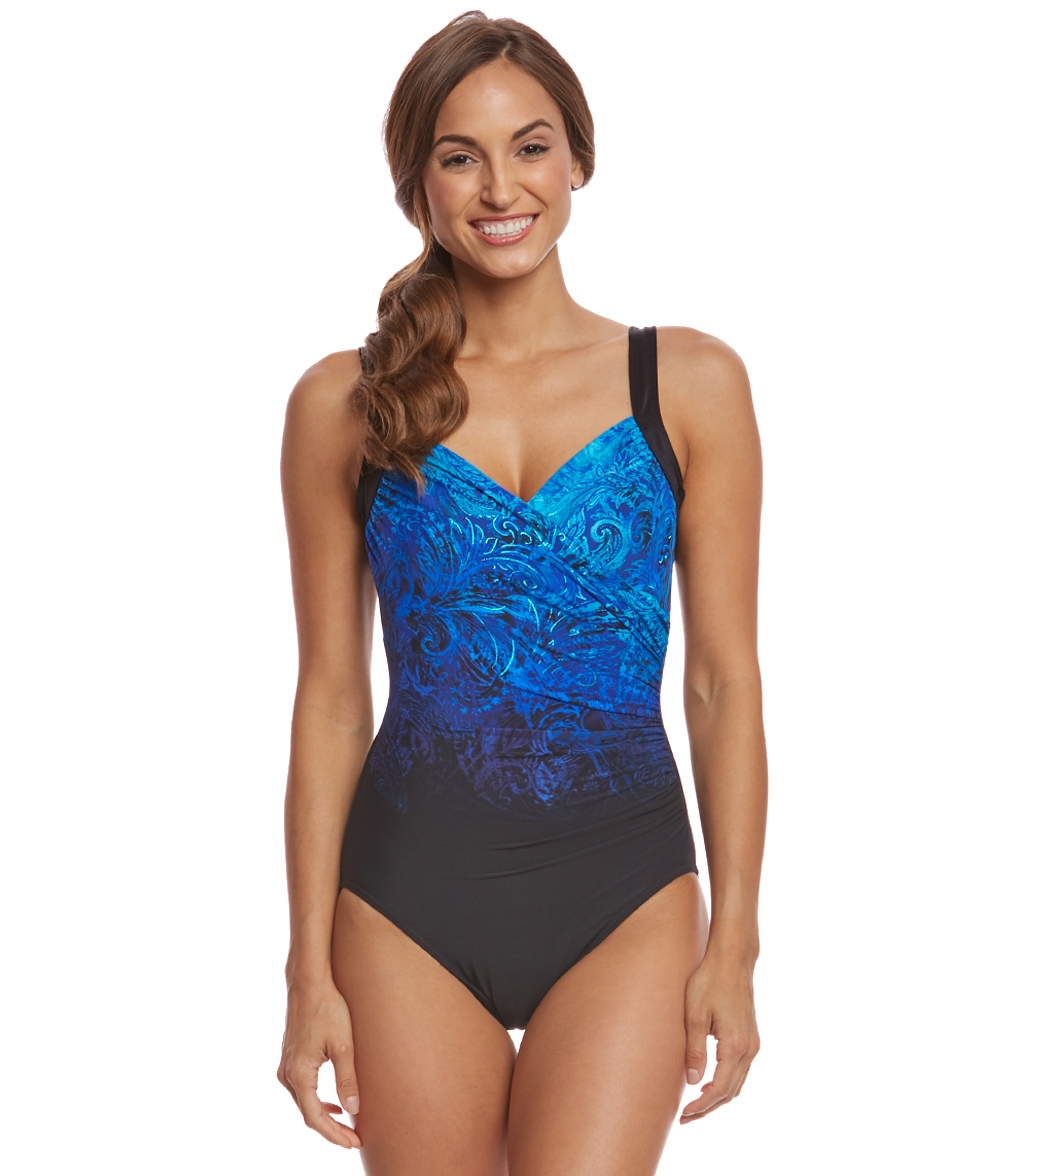 6ea66bf3d1 Miraclesuit Mediterra Sanibel Underwire One Piece Swimsuit at ...